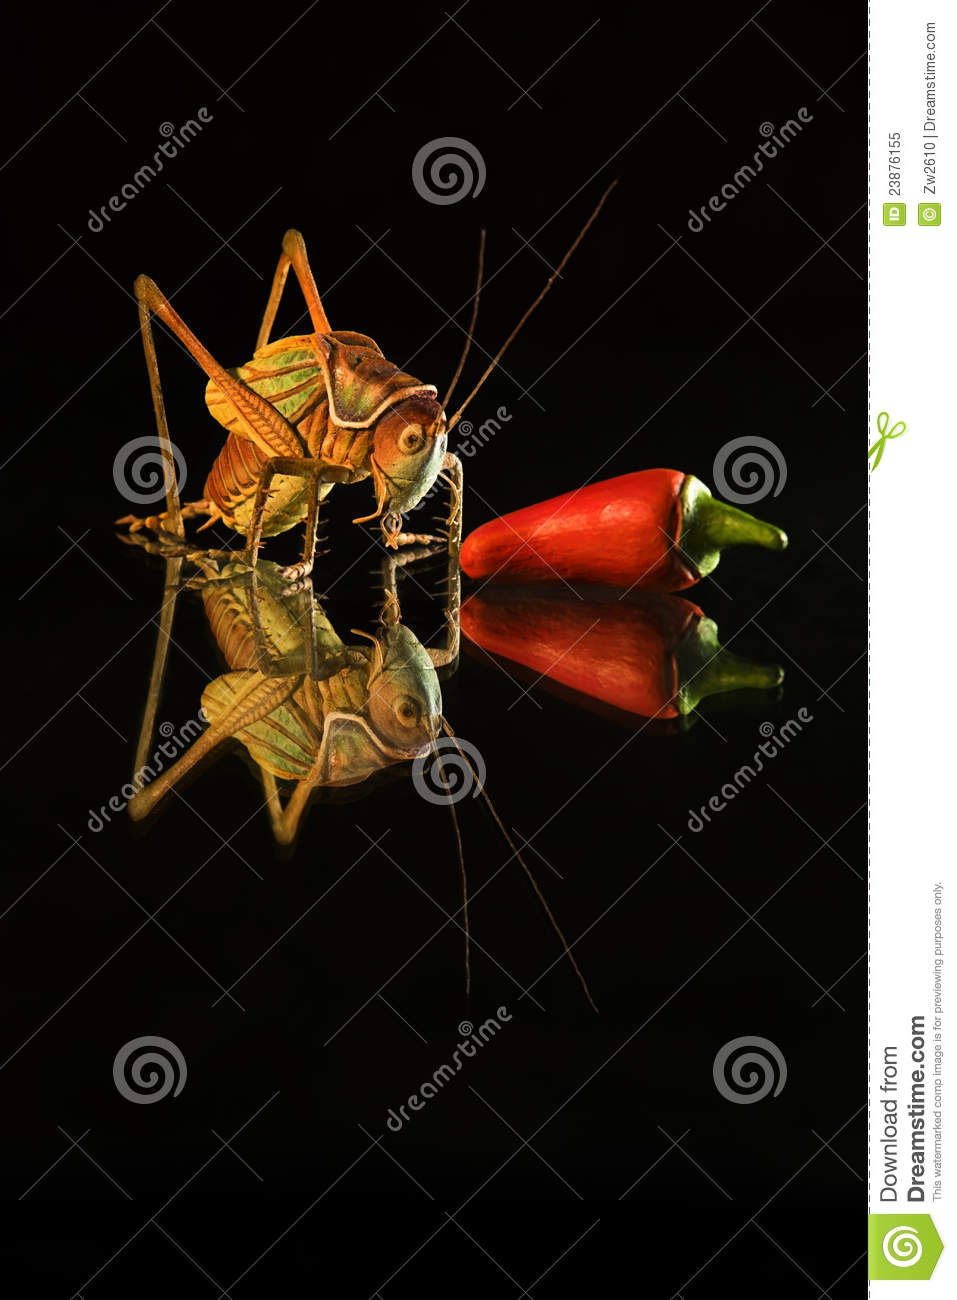 arts of insect and chilli as still life